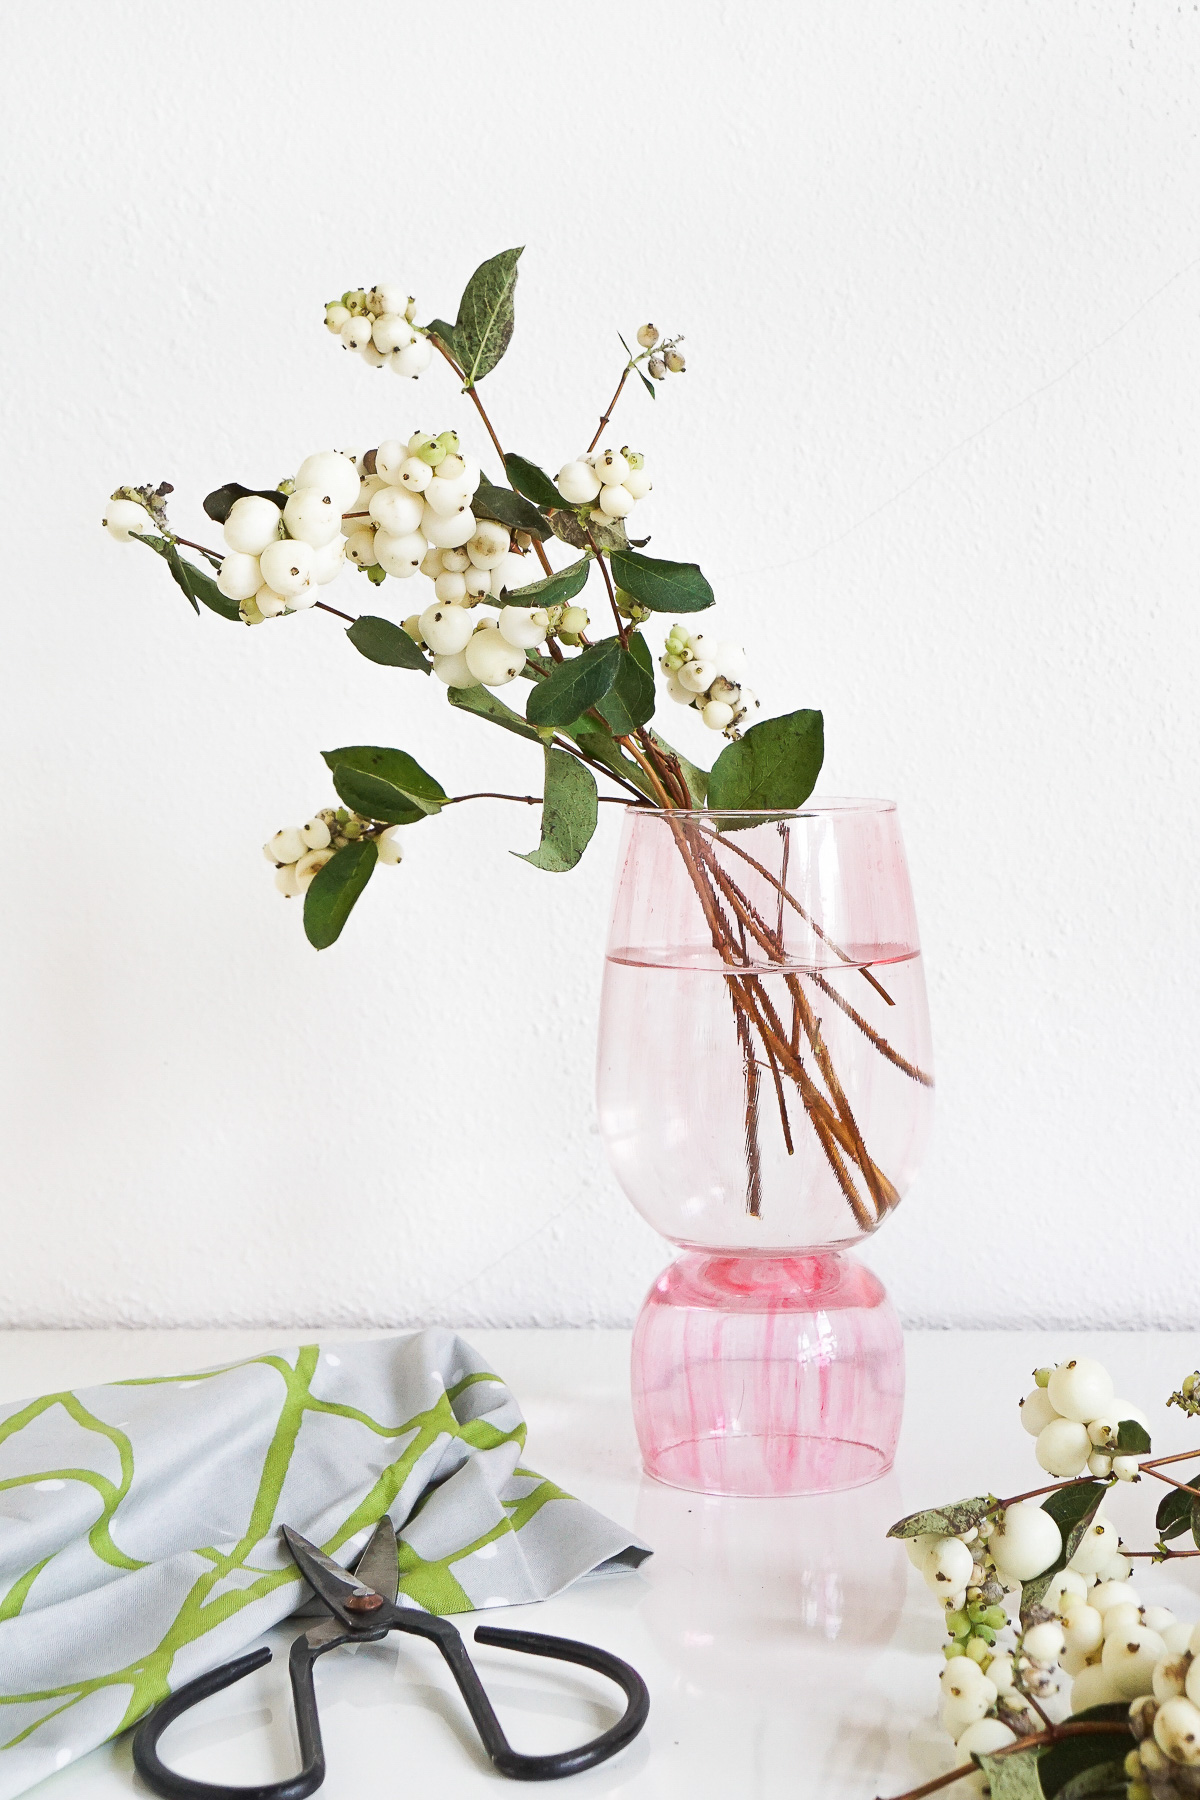 DIY vase made from stacked glasses